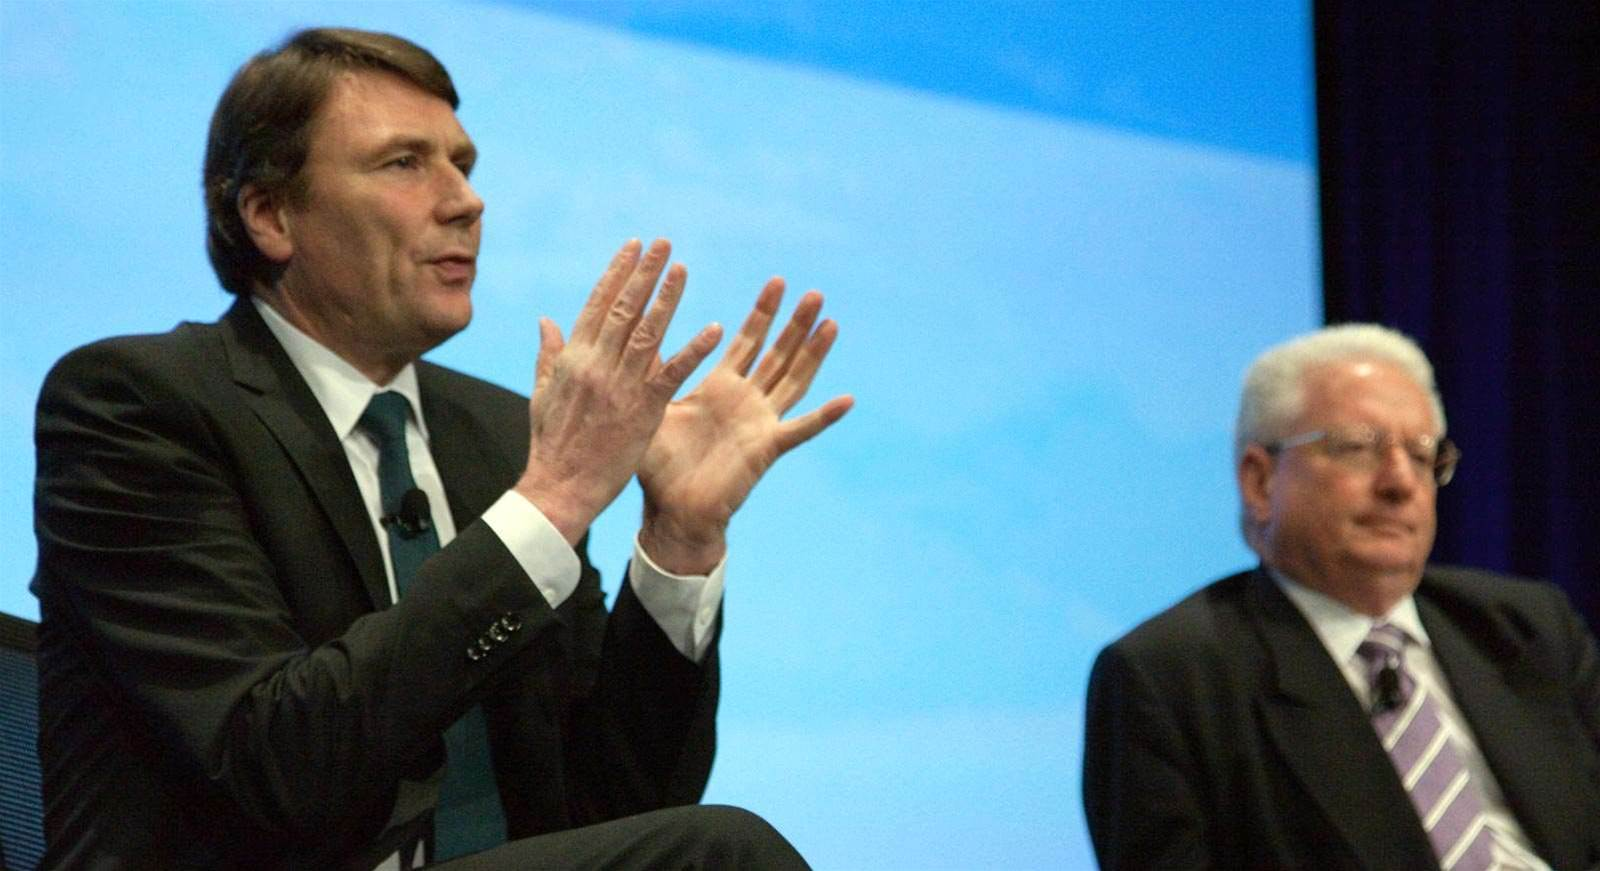 Telstra CEO available 'on-demand' for Conroy